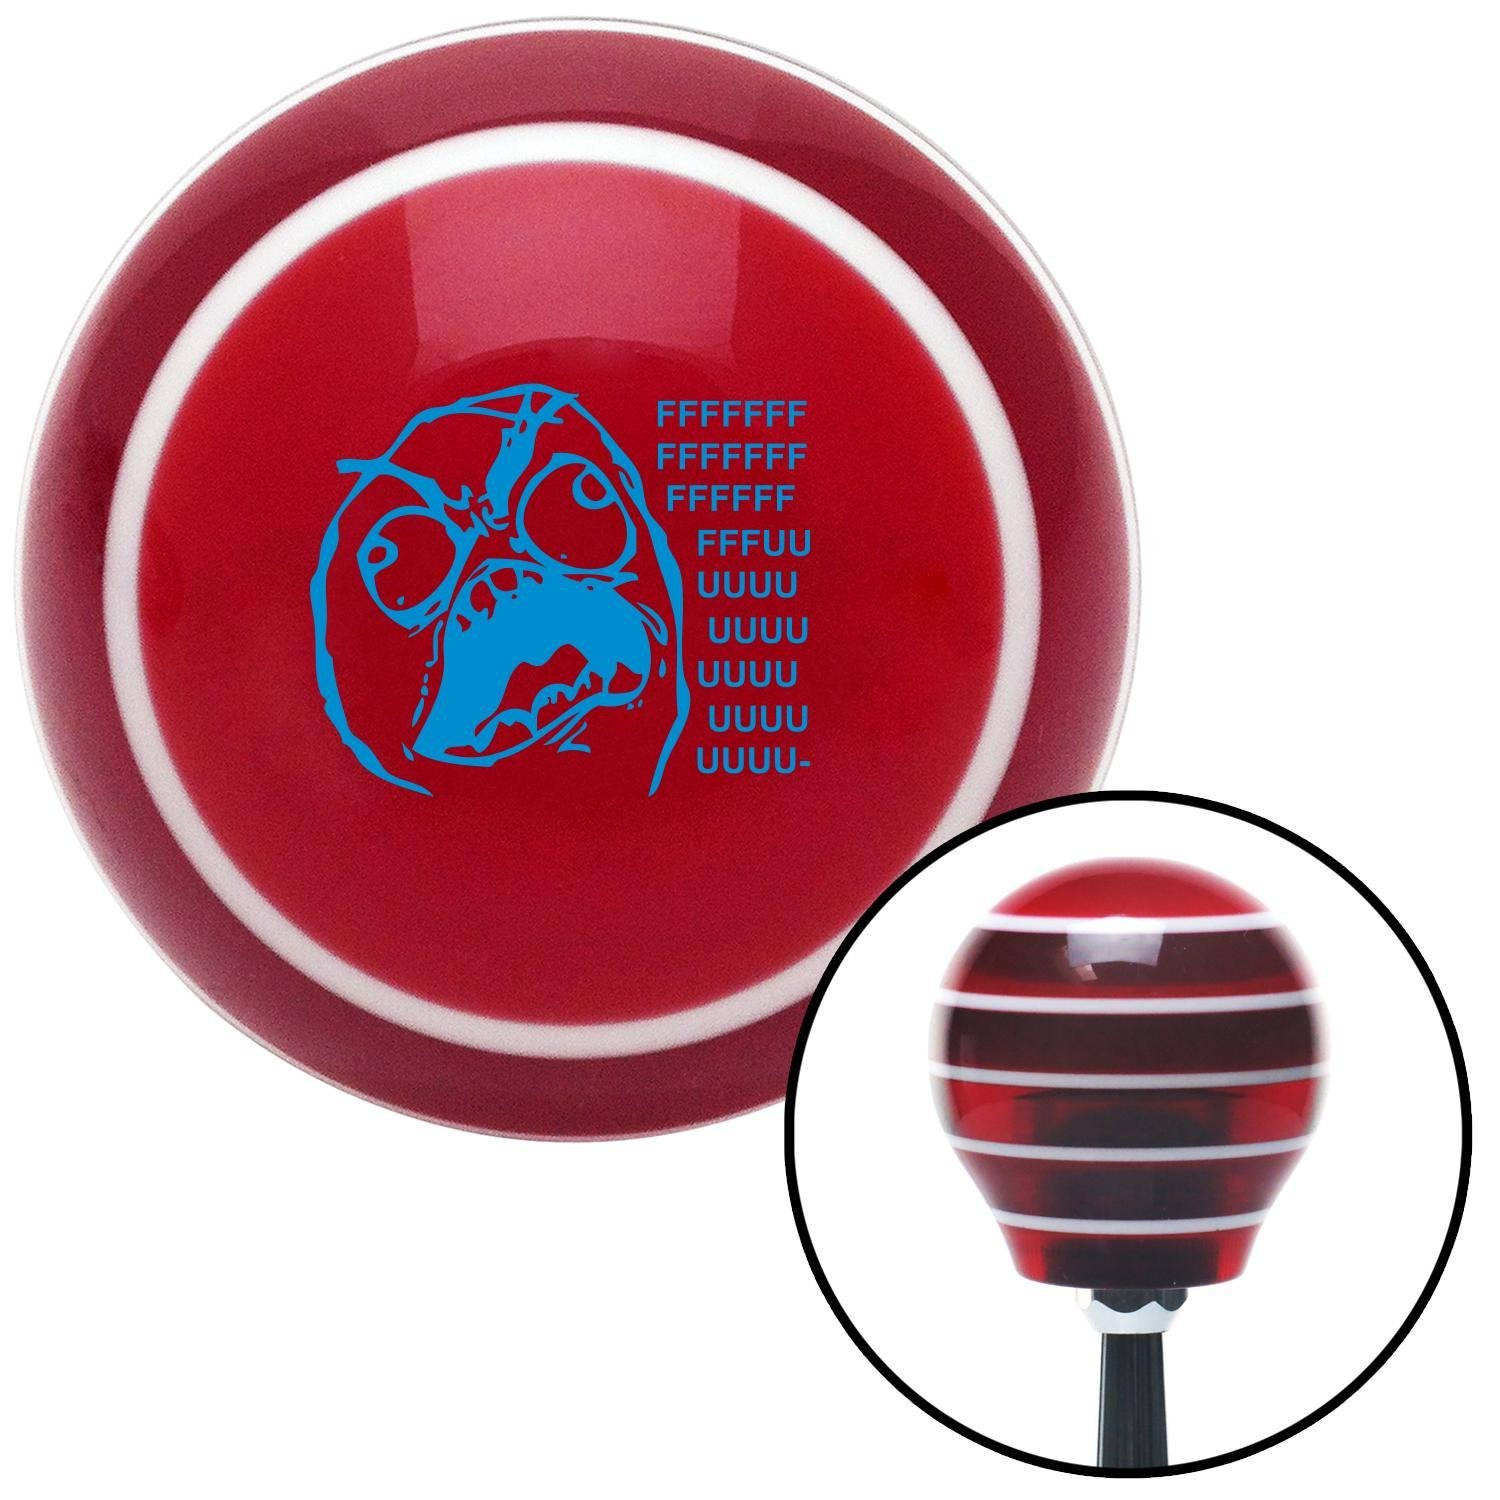 American Shifter 114756 Red Stripe Shift Knob with M16 x 1.5 Insert Blue Rage Face